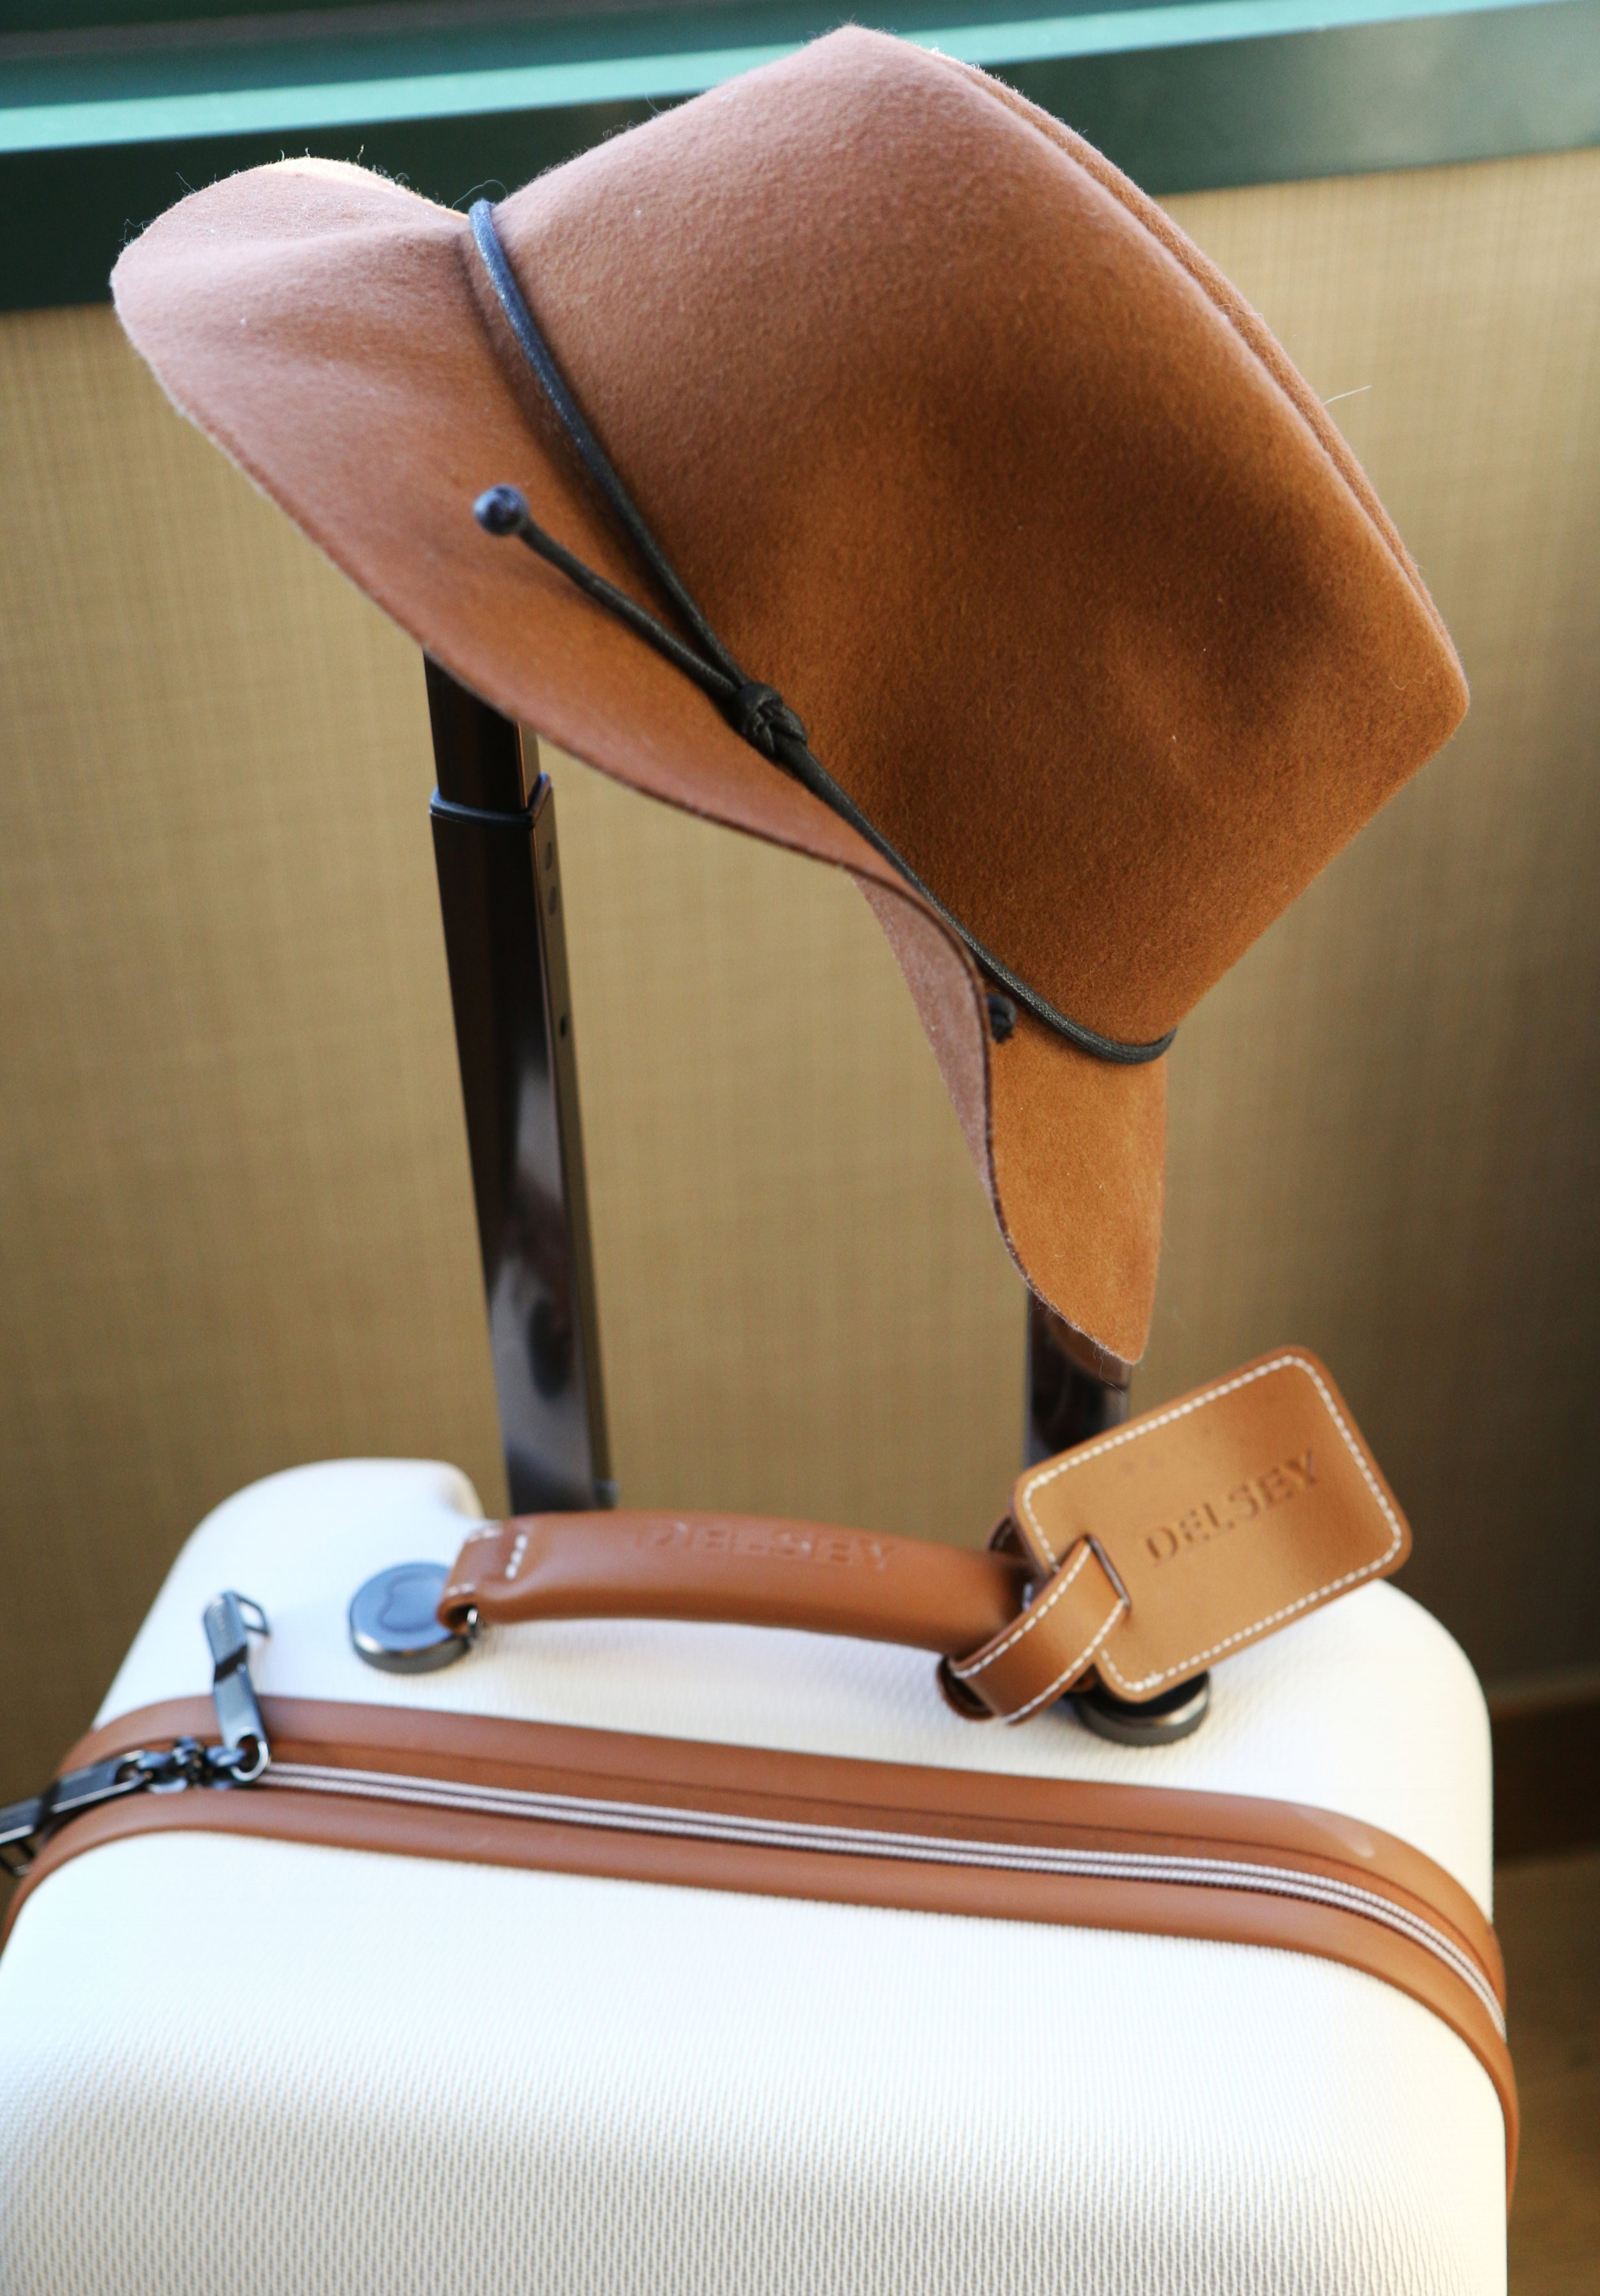 Adorable Delsey luggage